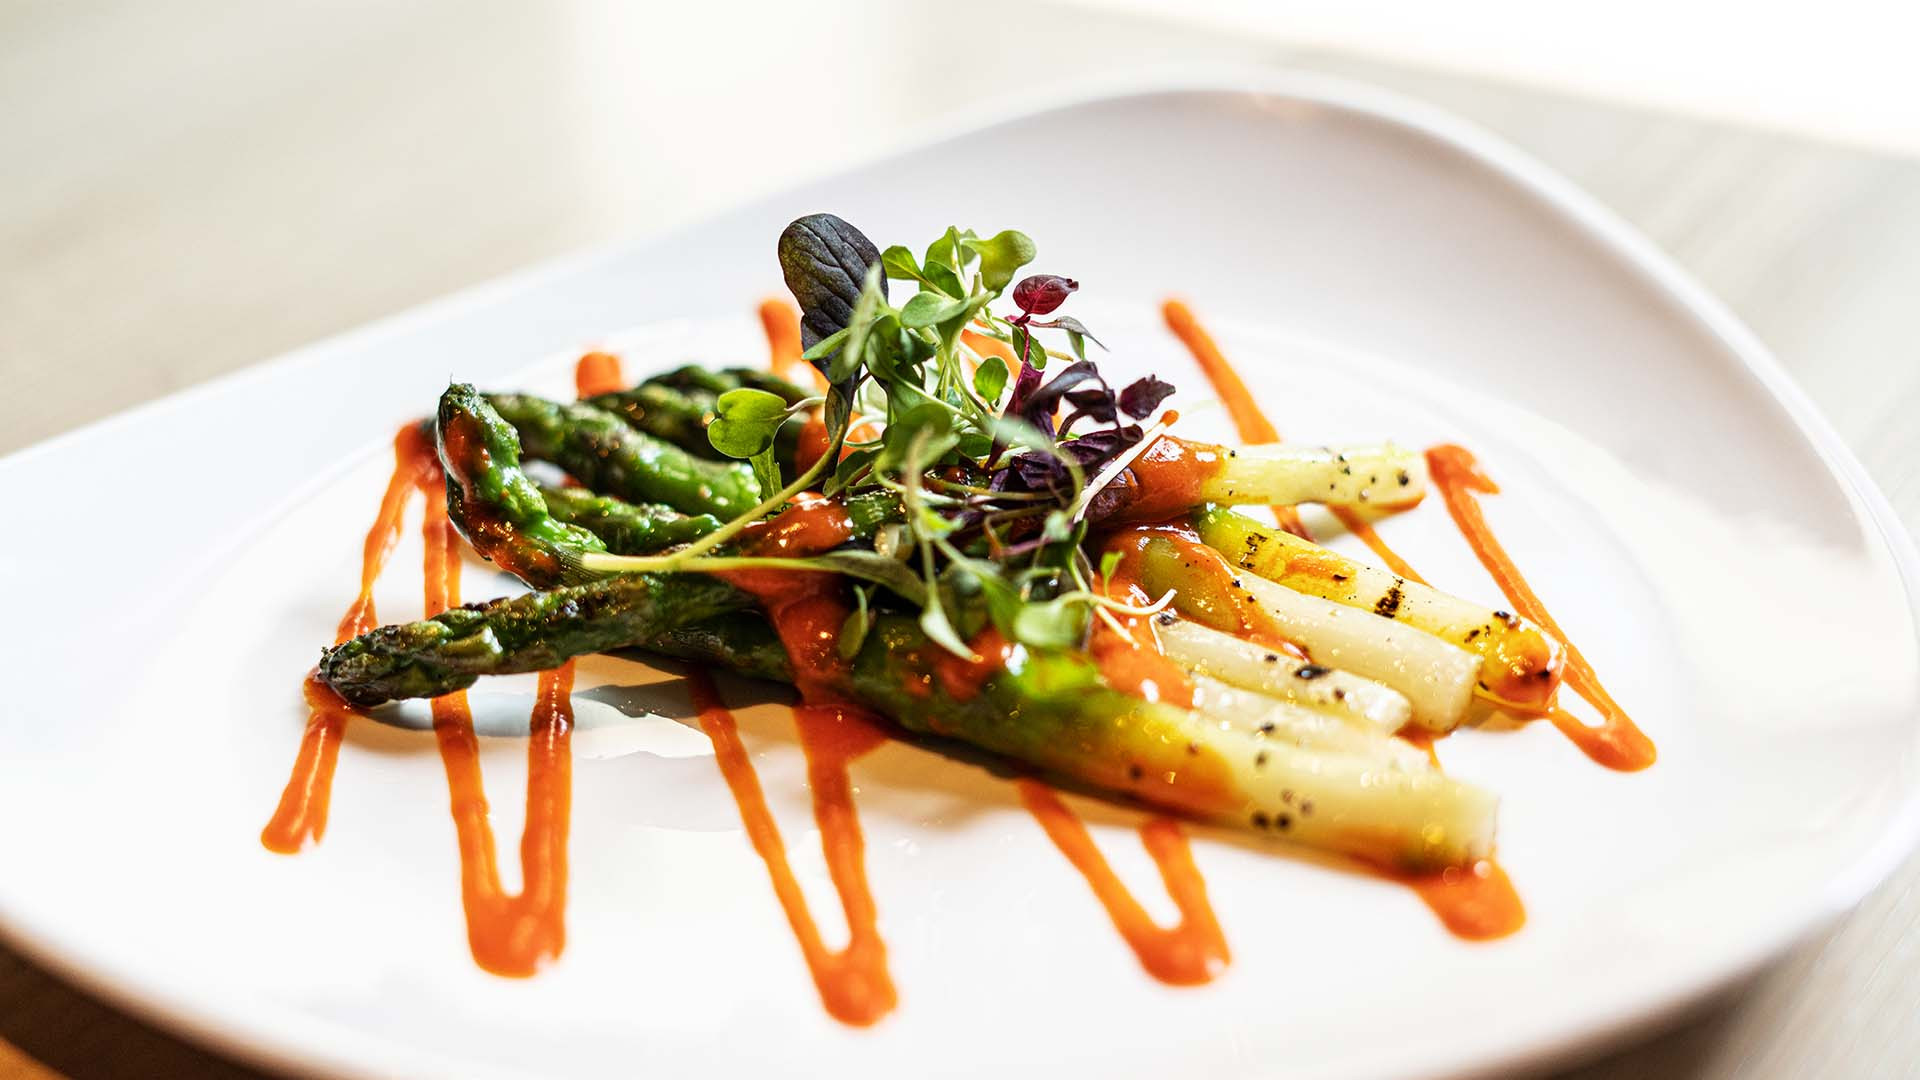 Grilled Asparagus with honey and mustard vinaigrette